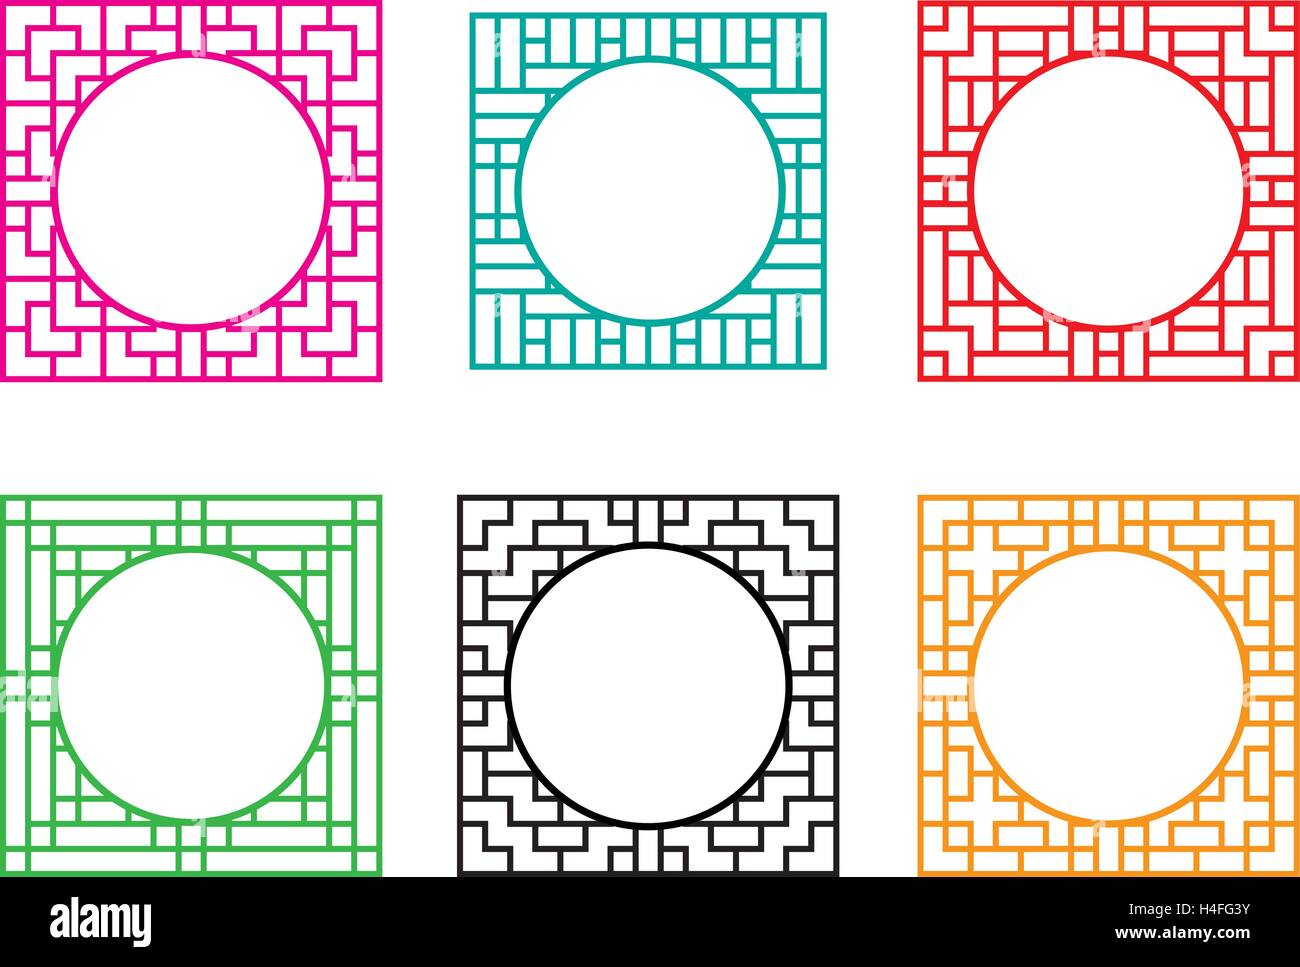 Square window frame with circle hole at center, vector Stock Vector ...